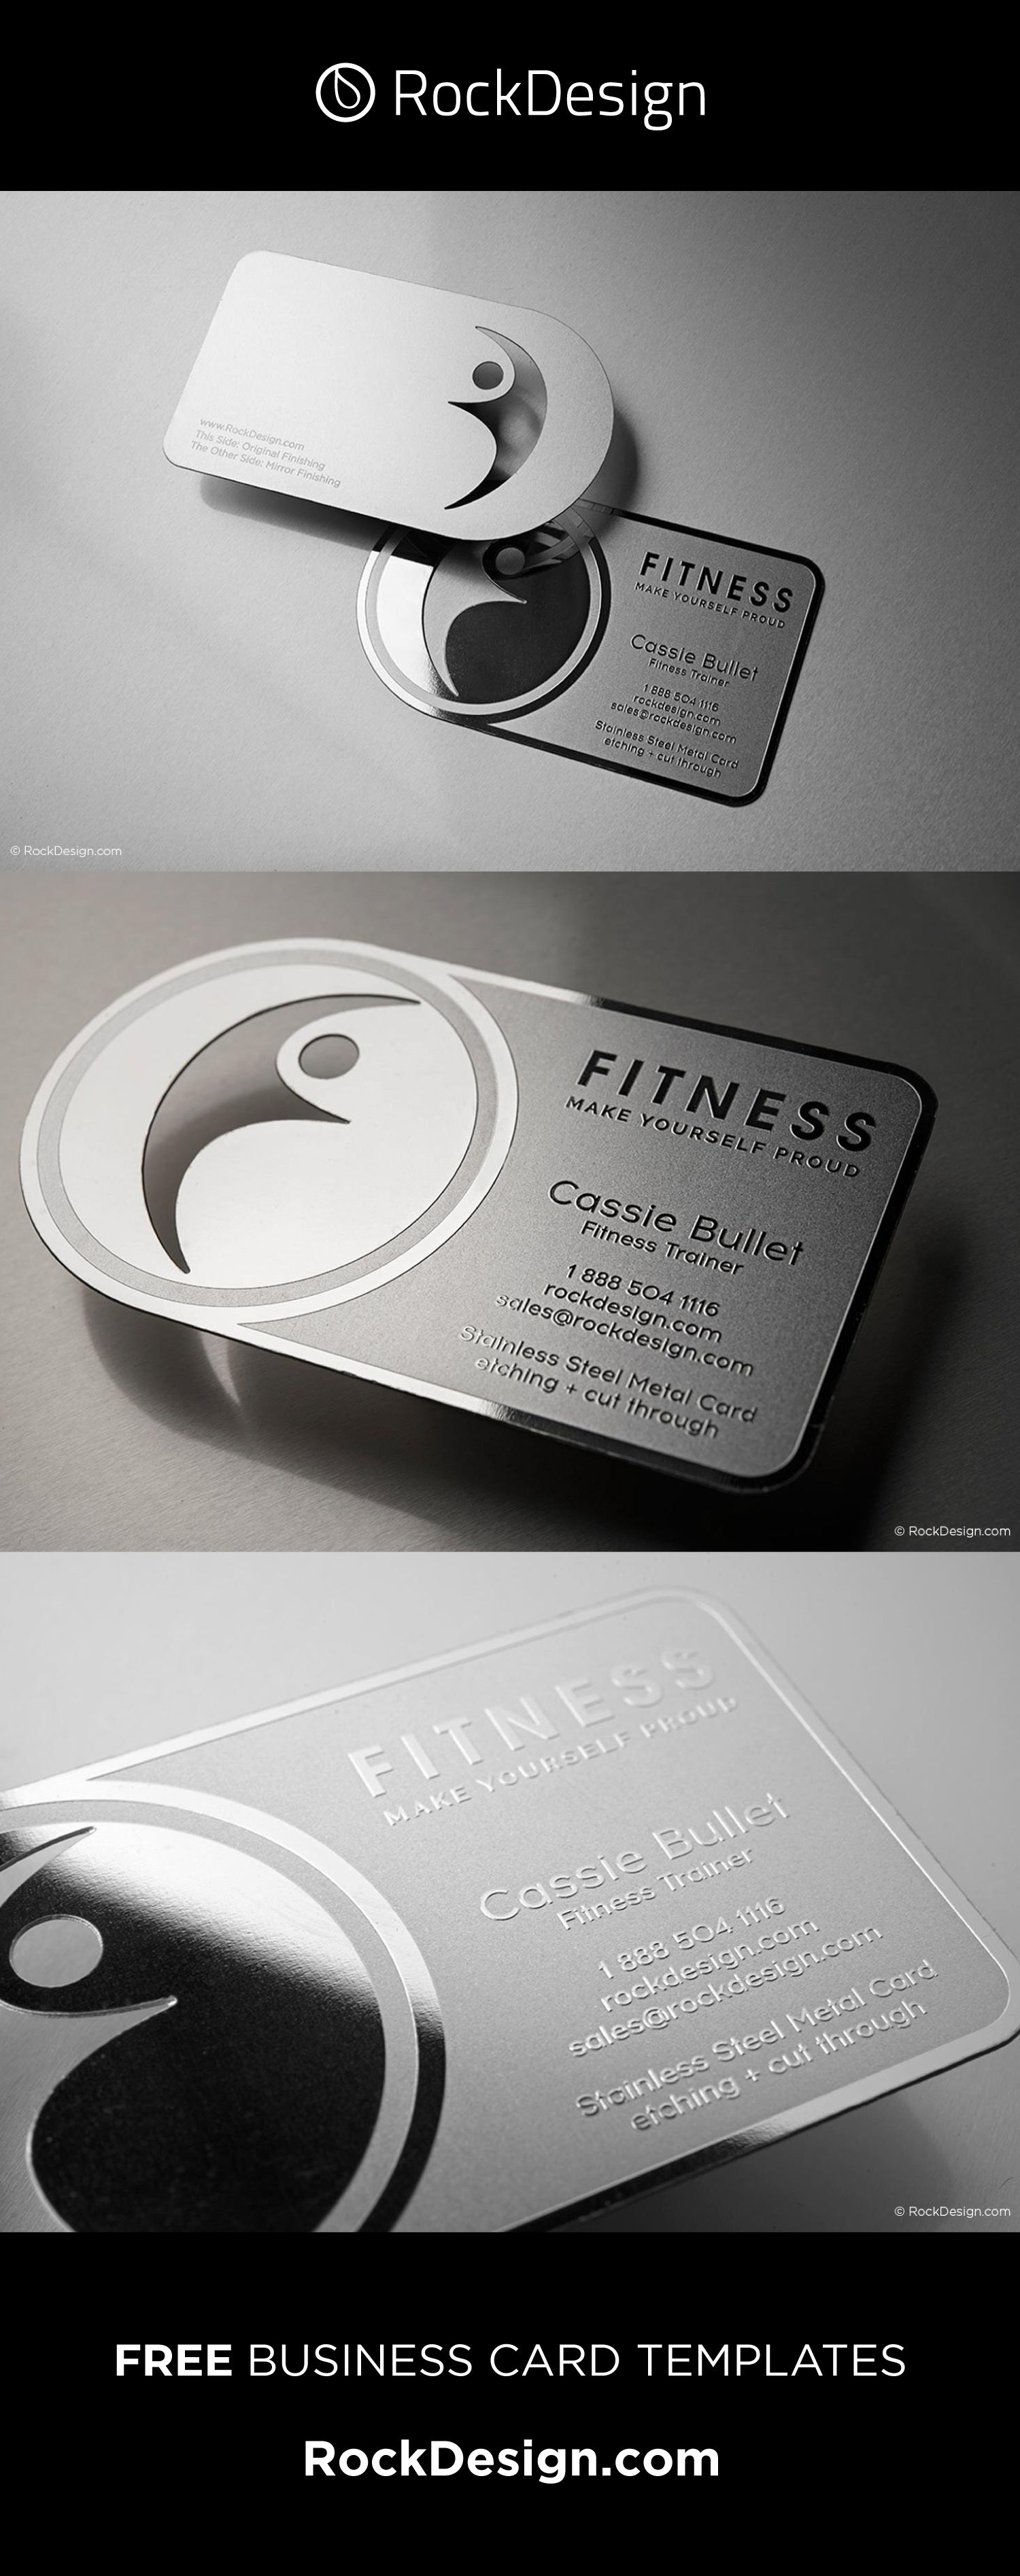 Fitness Business Card Stainless Steel Fitness Metal Business Cards Fitness Business Card Innovative Business Cards